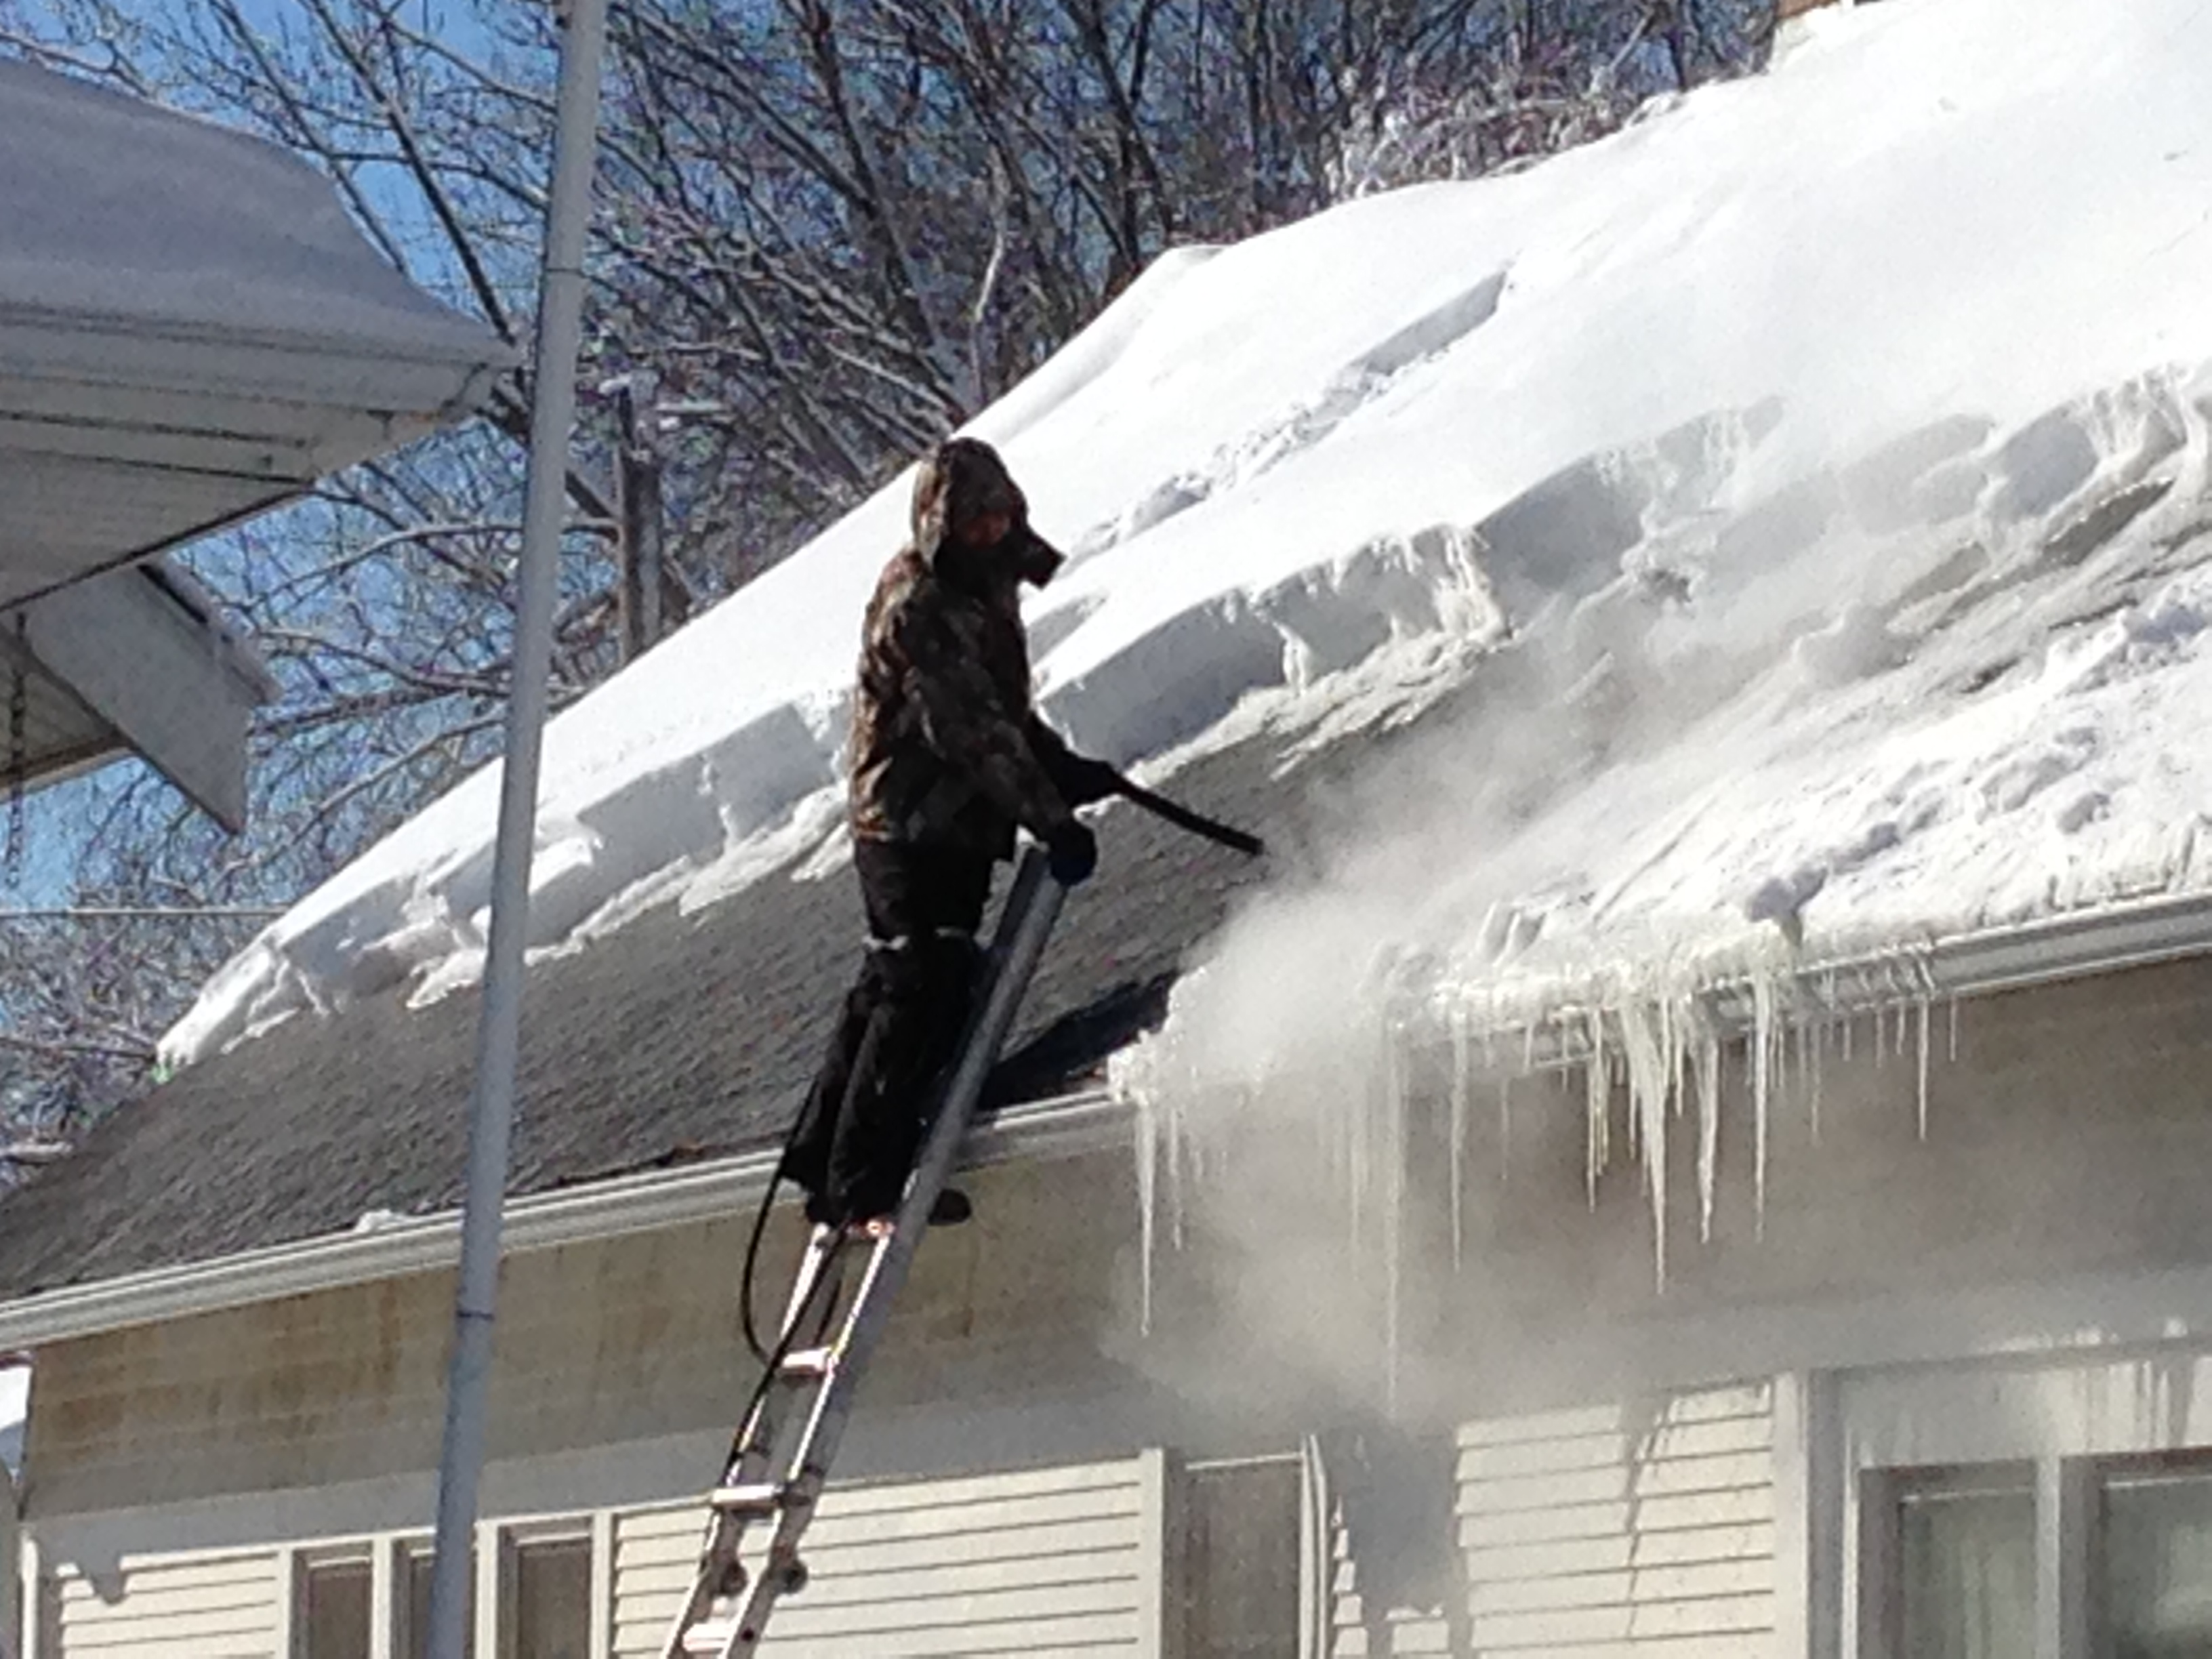 Rooftop ice dam removal, ice dam steaming